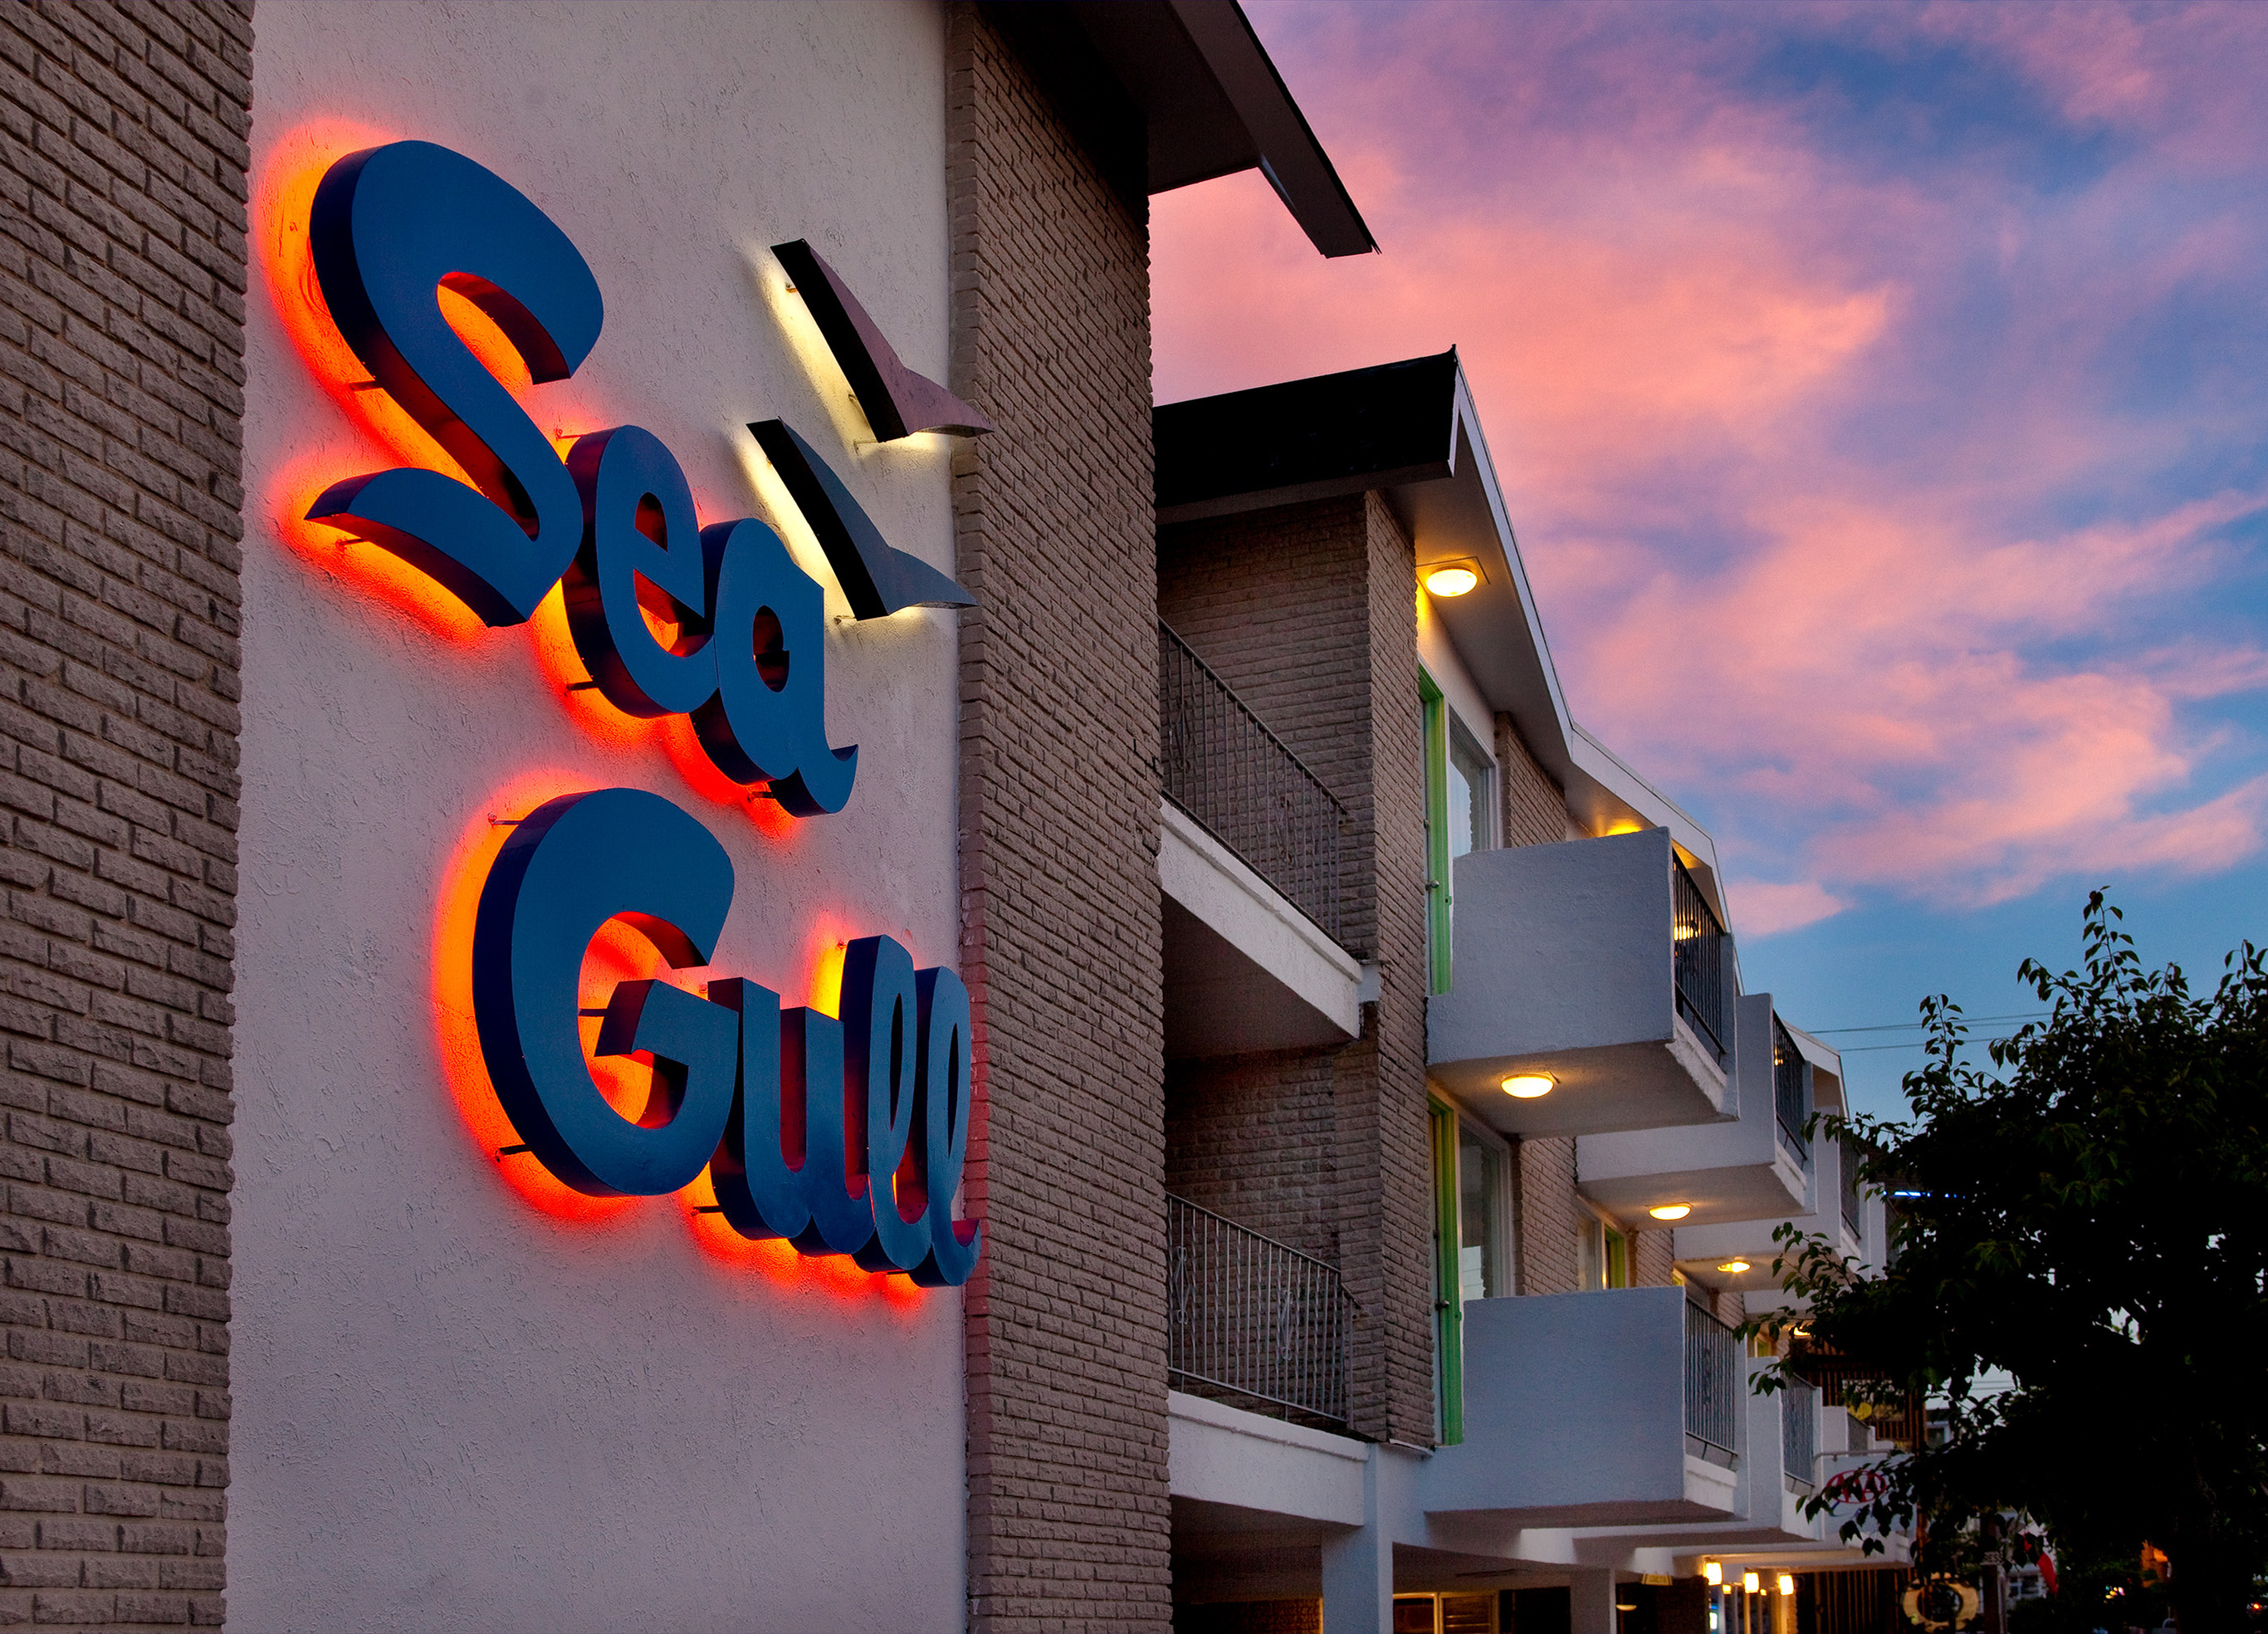 Sea Gull Motel